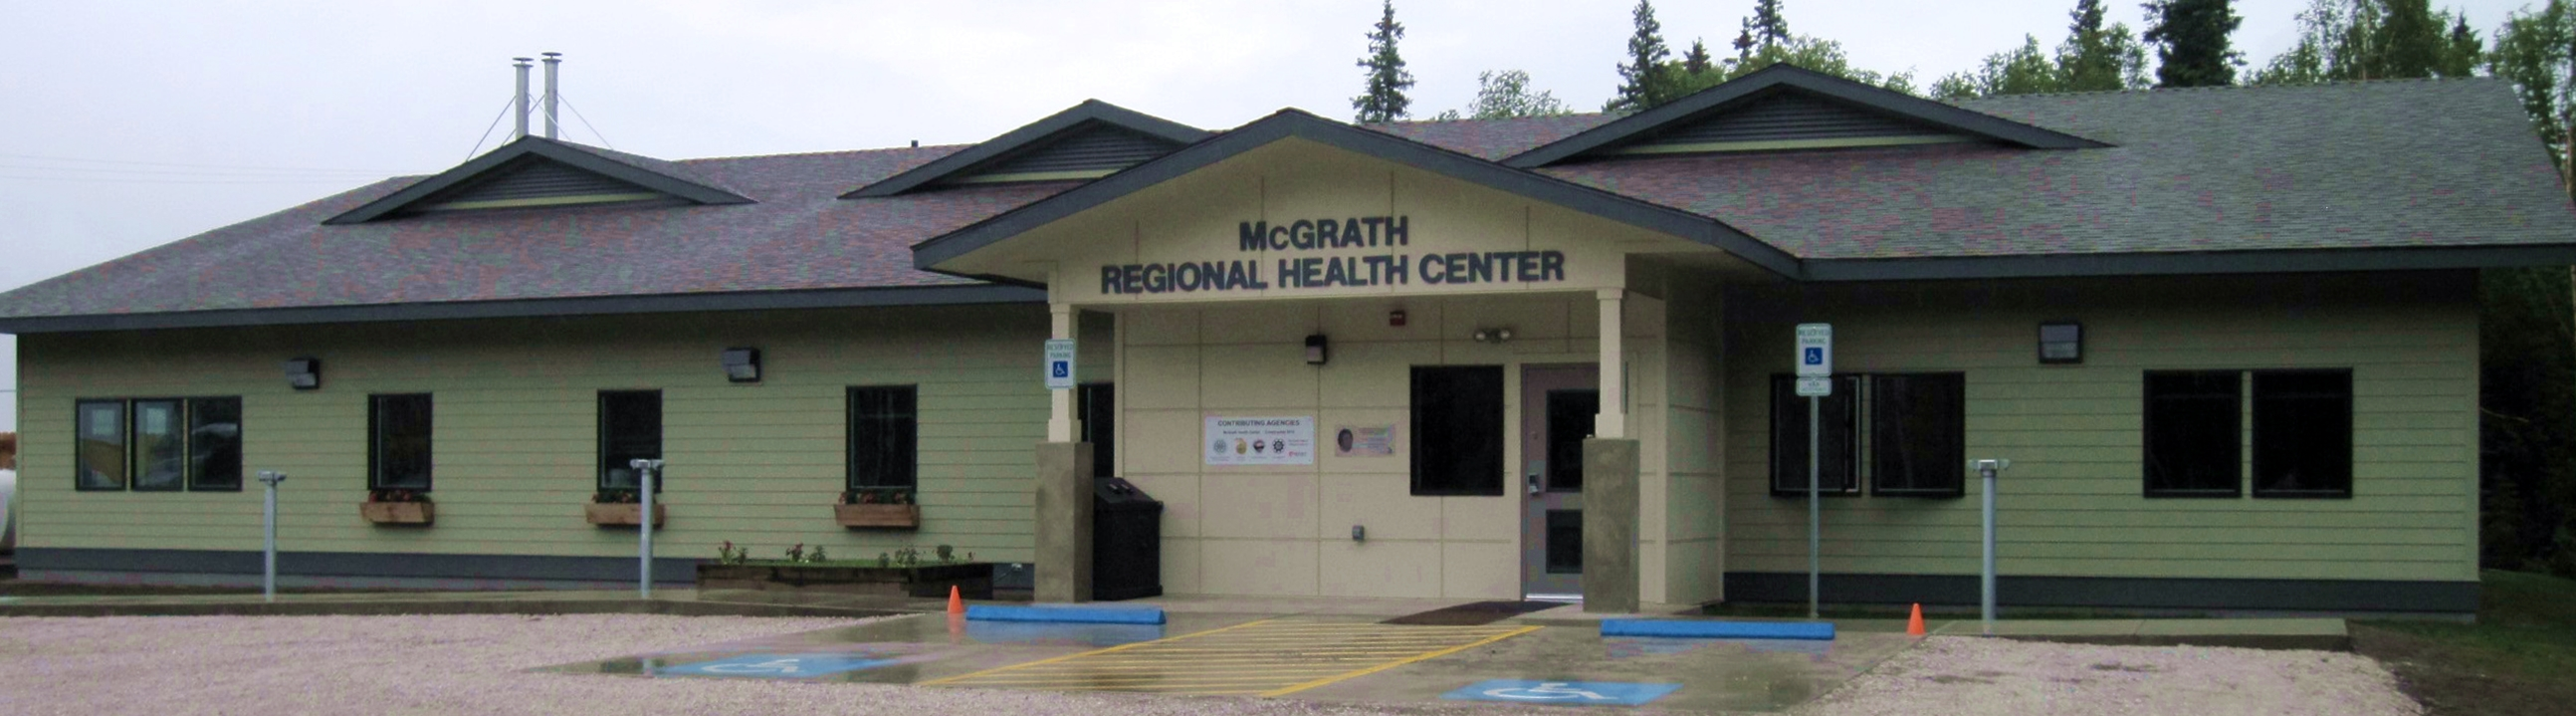 McGrath Regional Health Center Main Entry